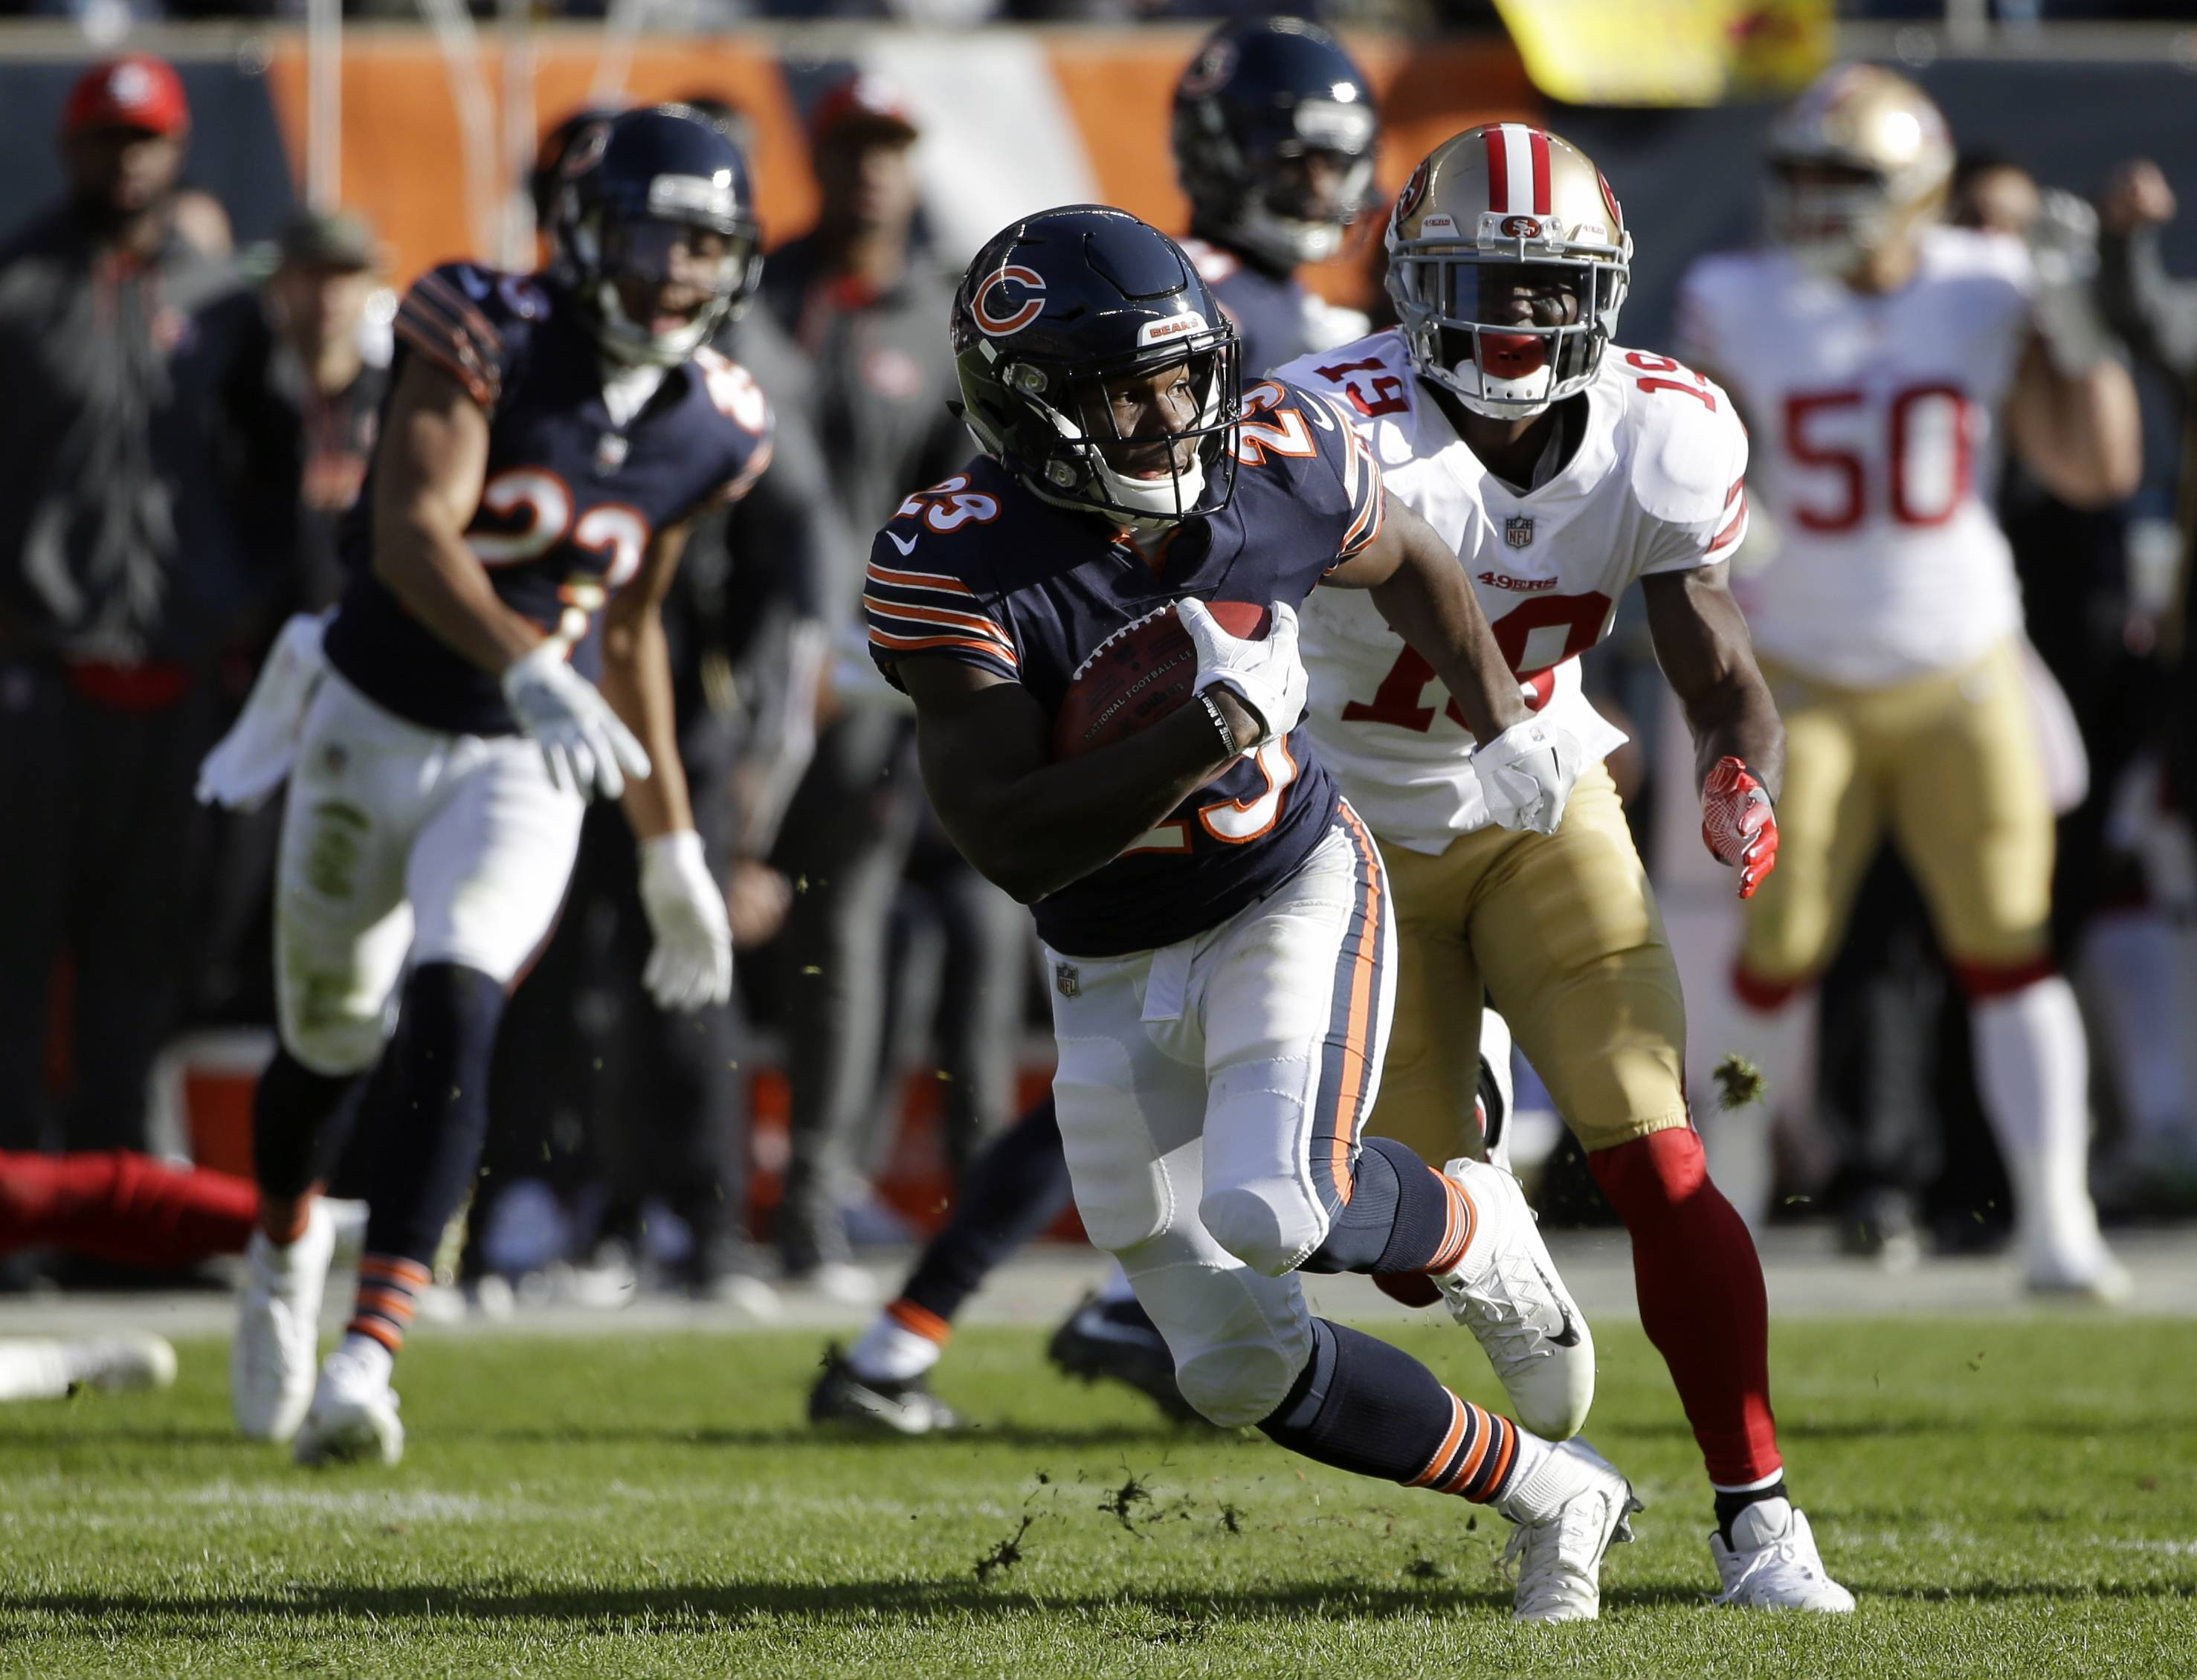 Possibilities abound for Cohen in Chicago Bears new offense